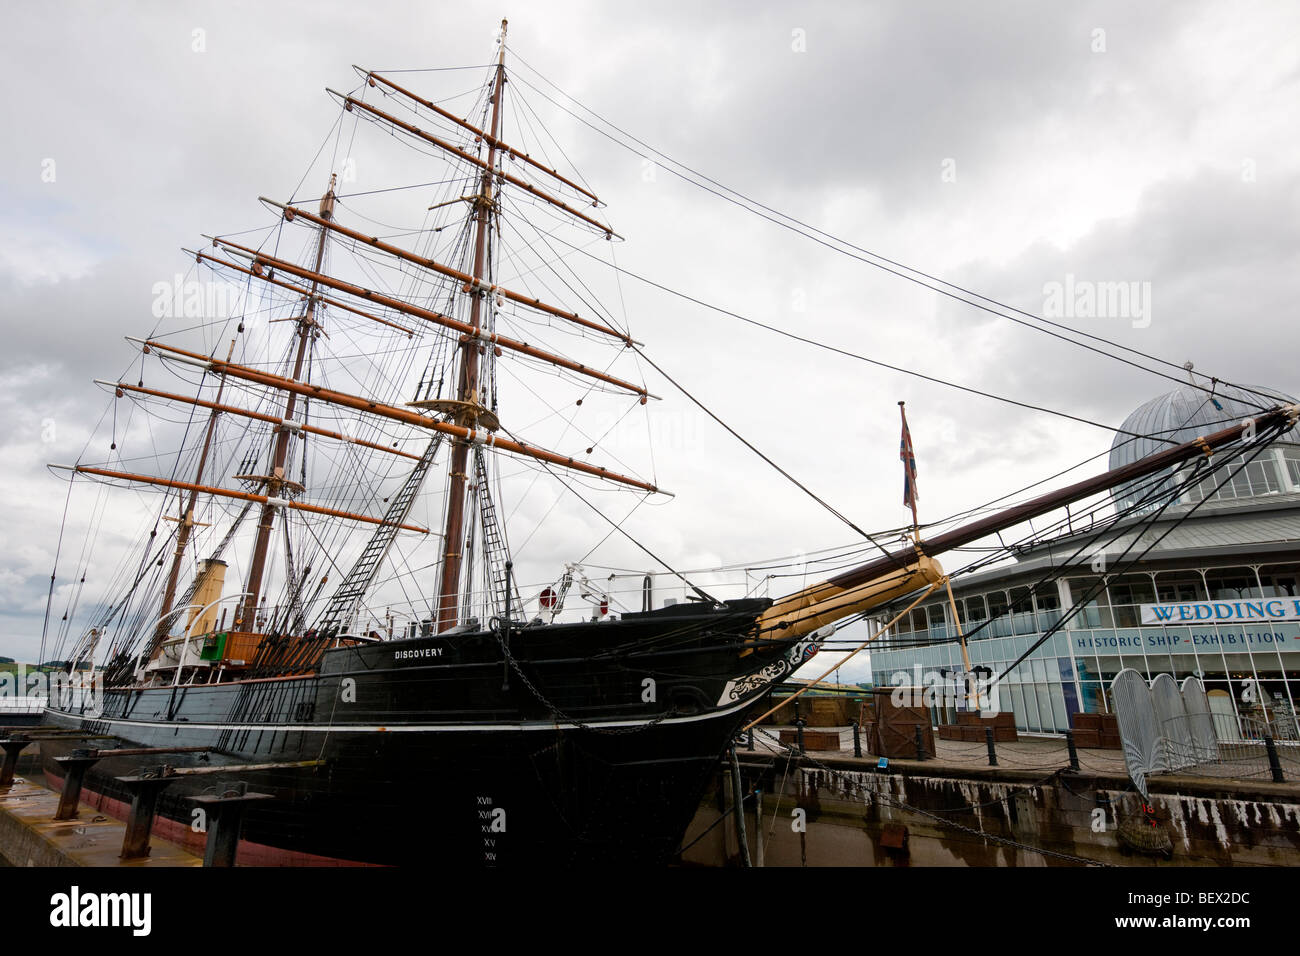 RRS Discovery, Dundee, Scotland. Antarctic expedition ship built in 1901 - Stock Image